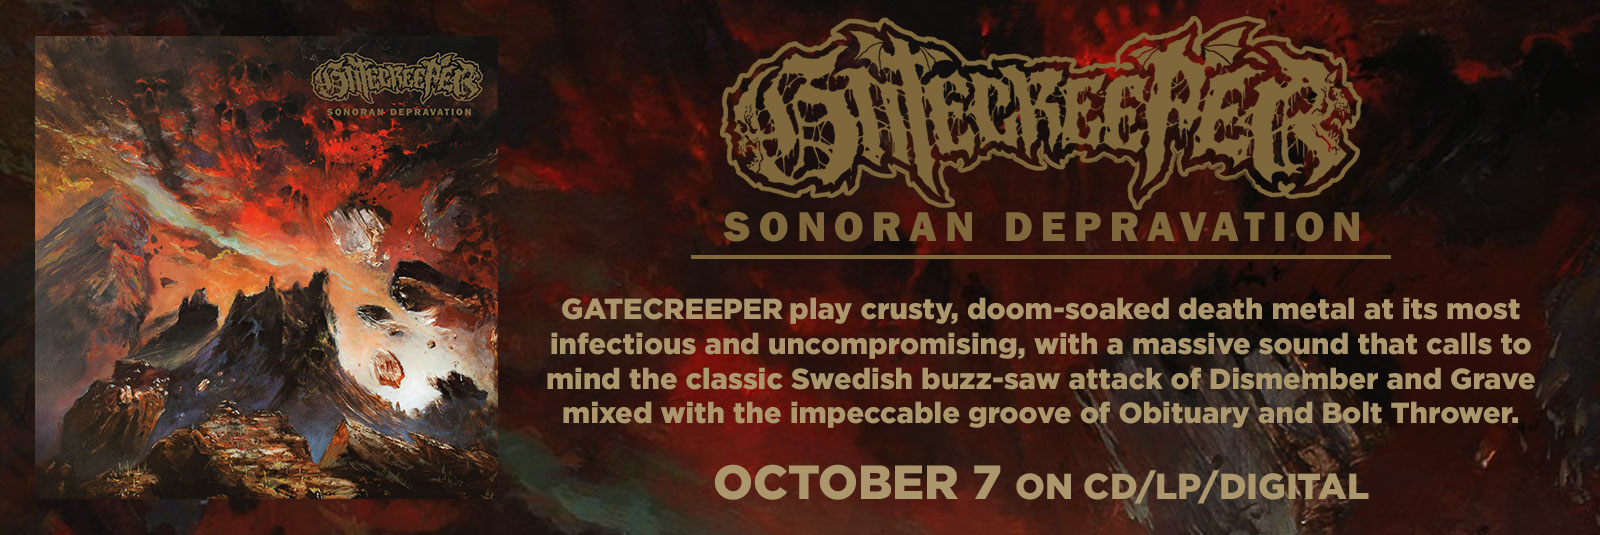 gatecreeper-sonoran-depravation